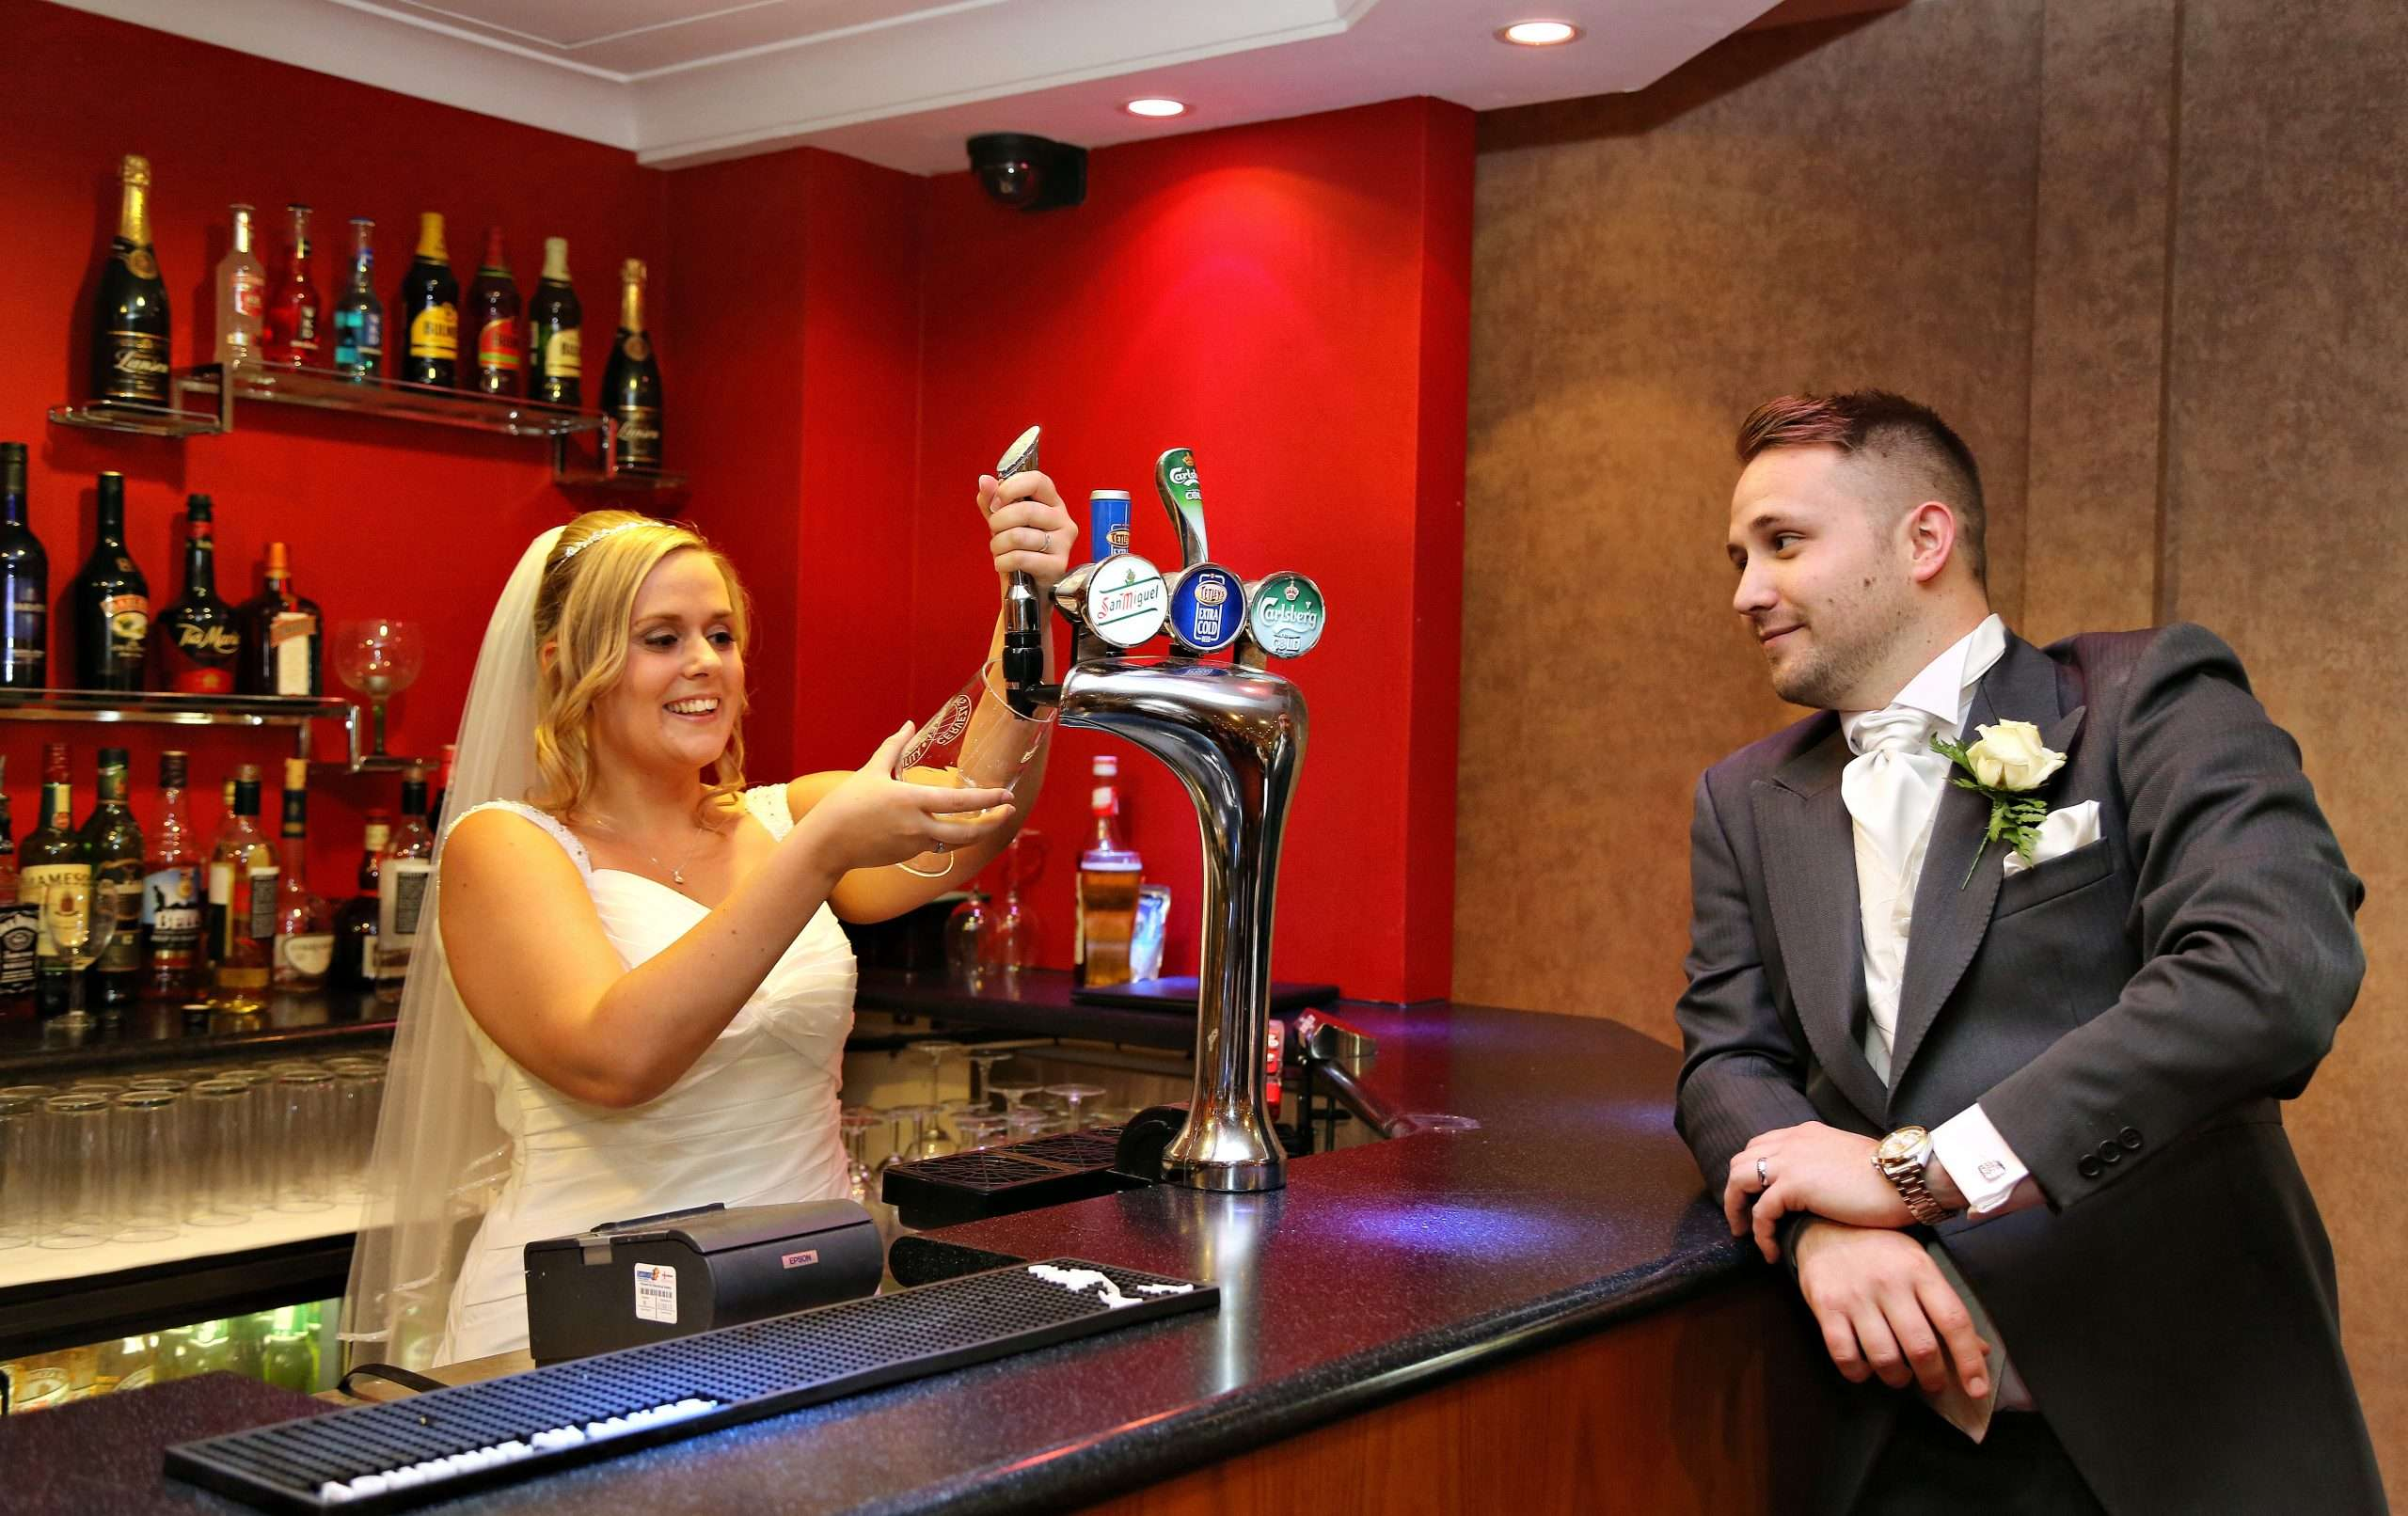 Lisa and Darren in their wedding outfits. Lisa is pretending to pour Darren a beer from the pump